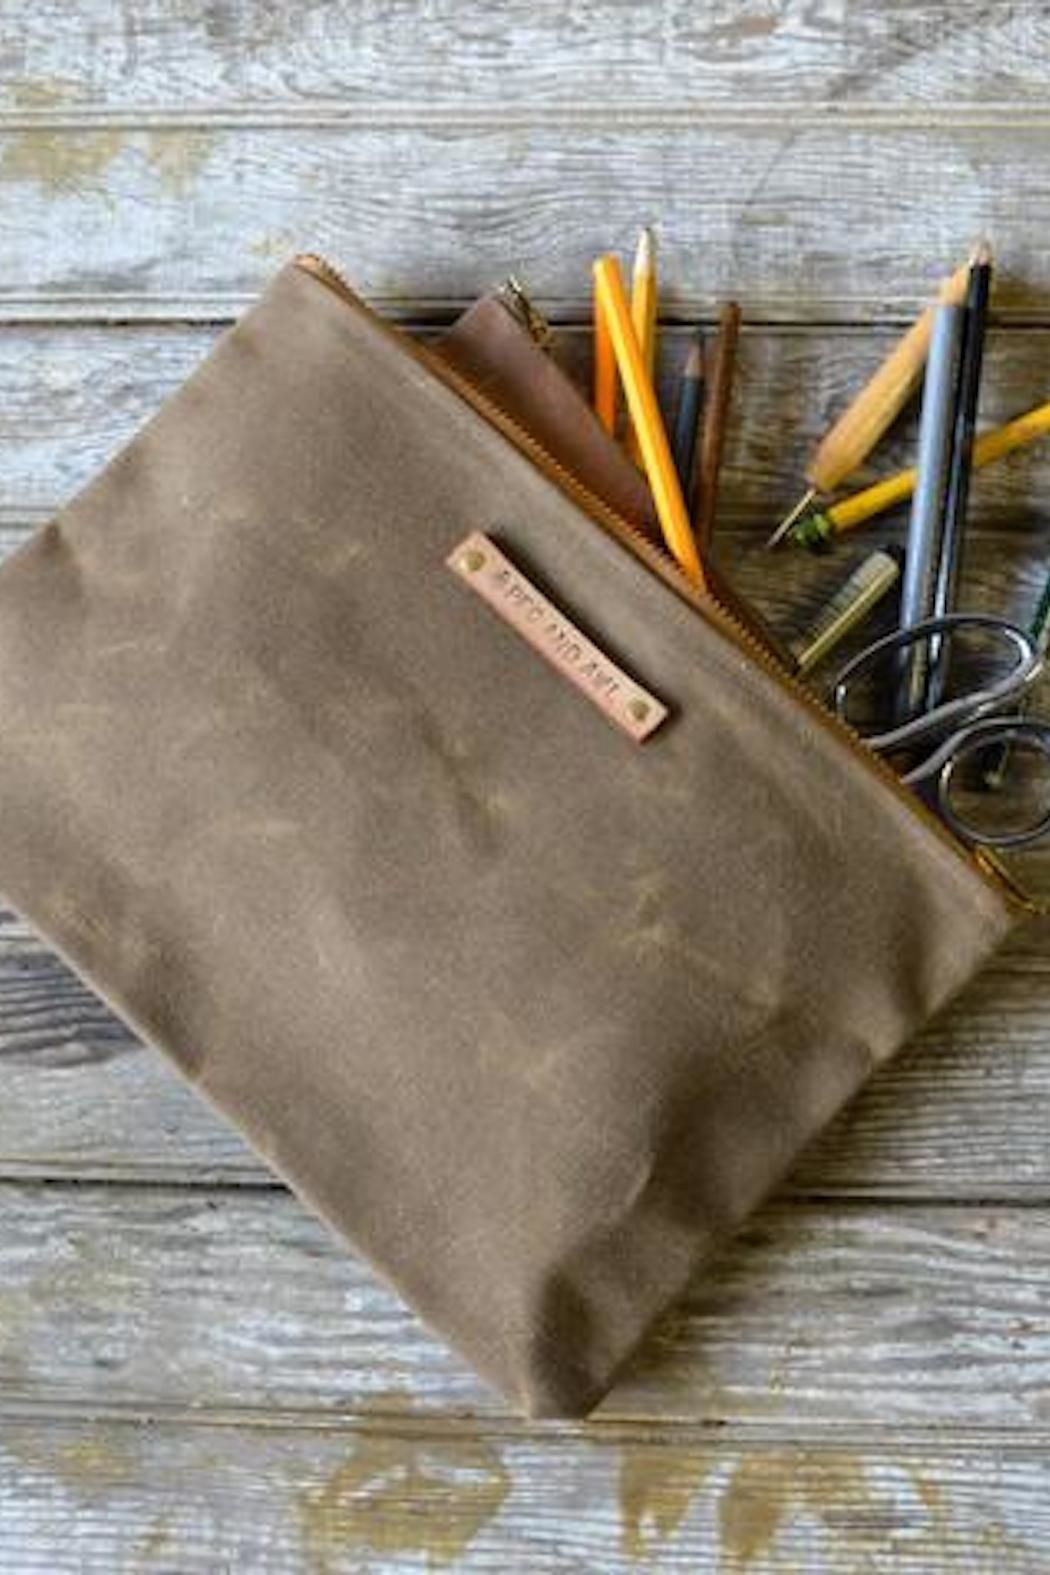 Peg & Awl Waxed Canvas Pouch - Main Image